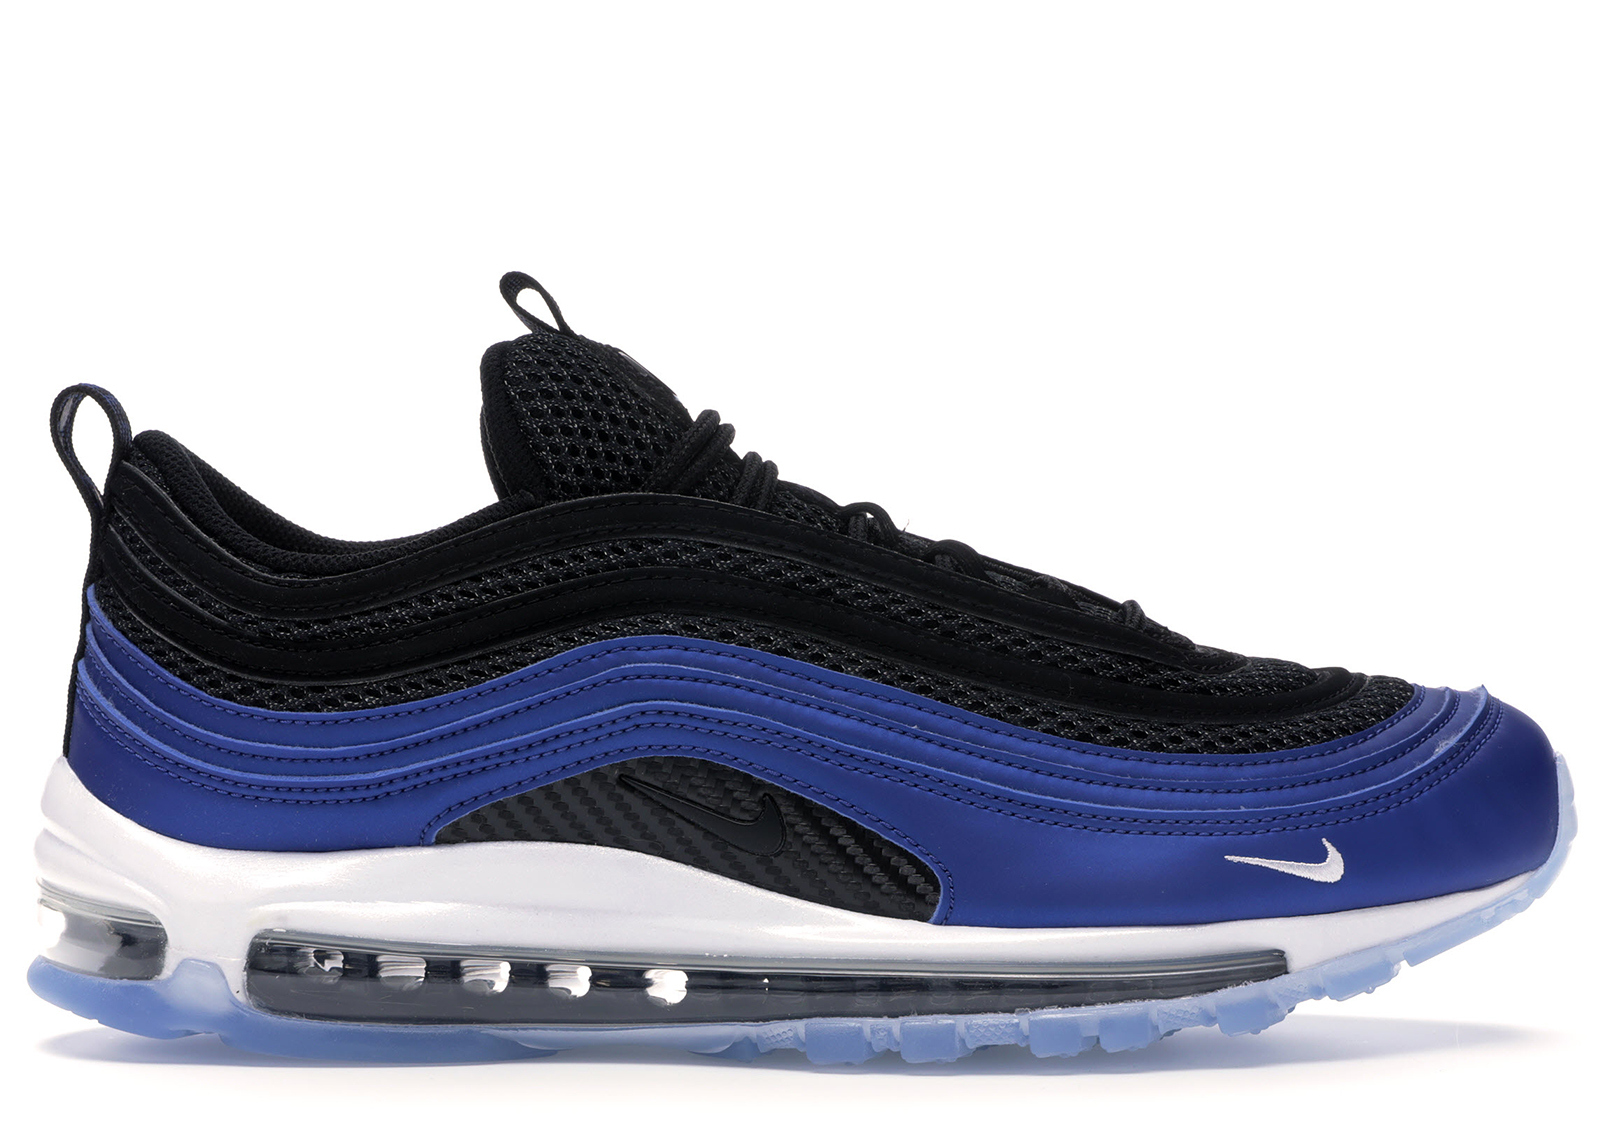 Nike Air Max 97 Foamposite